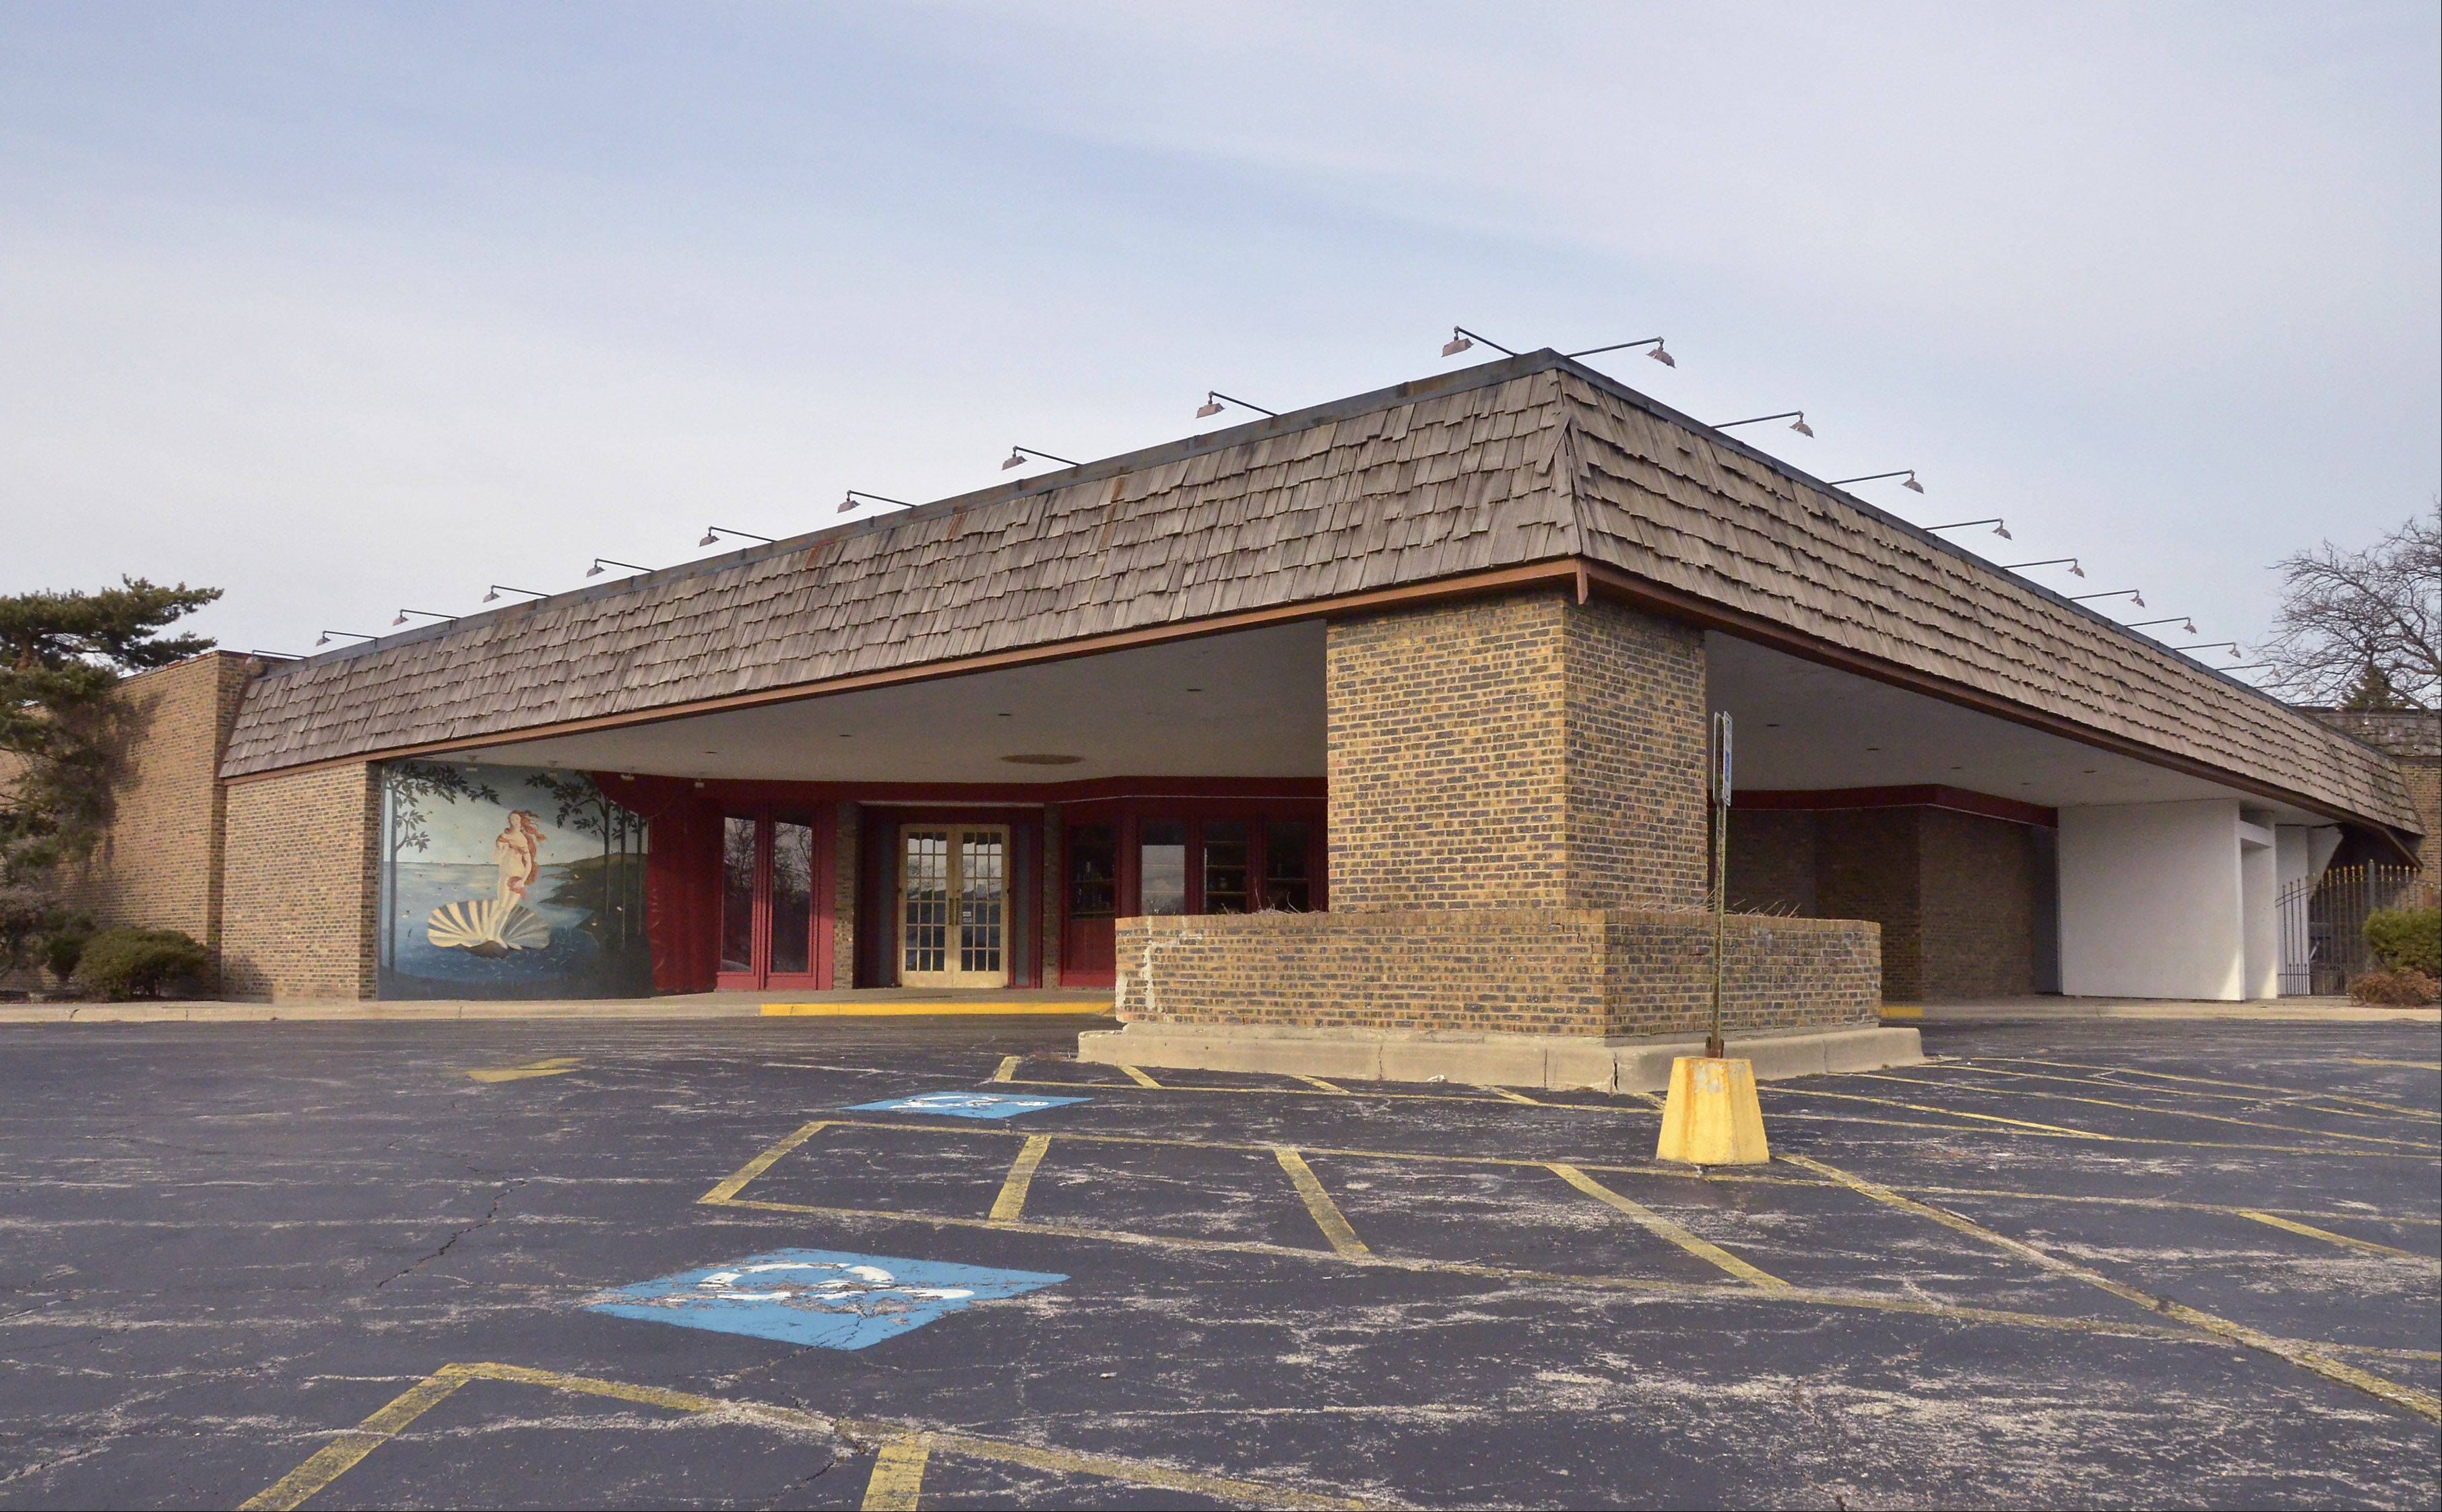 A Northfield pediatrician's dream of building a community center in the former Grazie Ristorante & Banquet building in Des Plaines was rejected Monday.